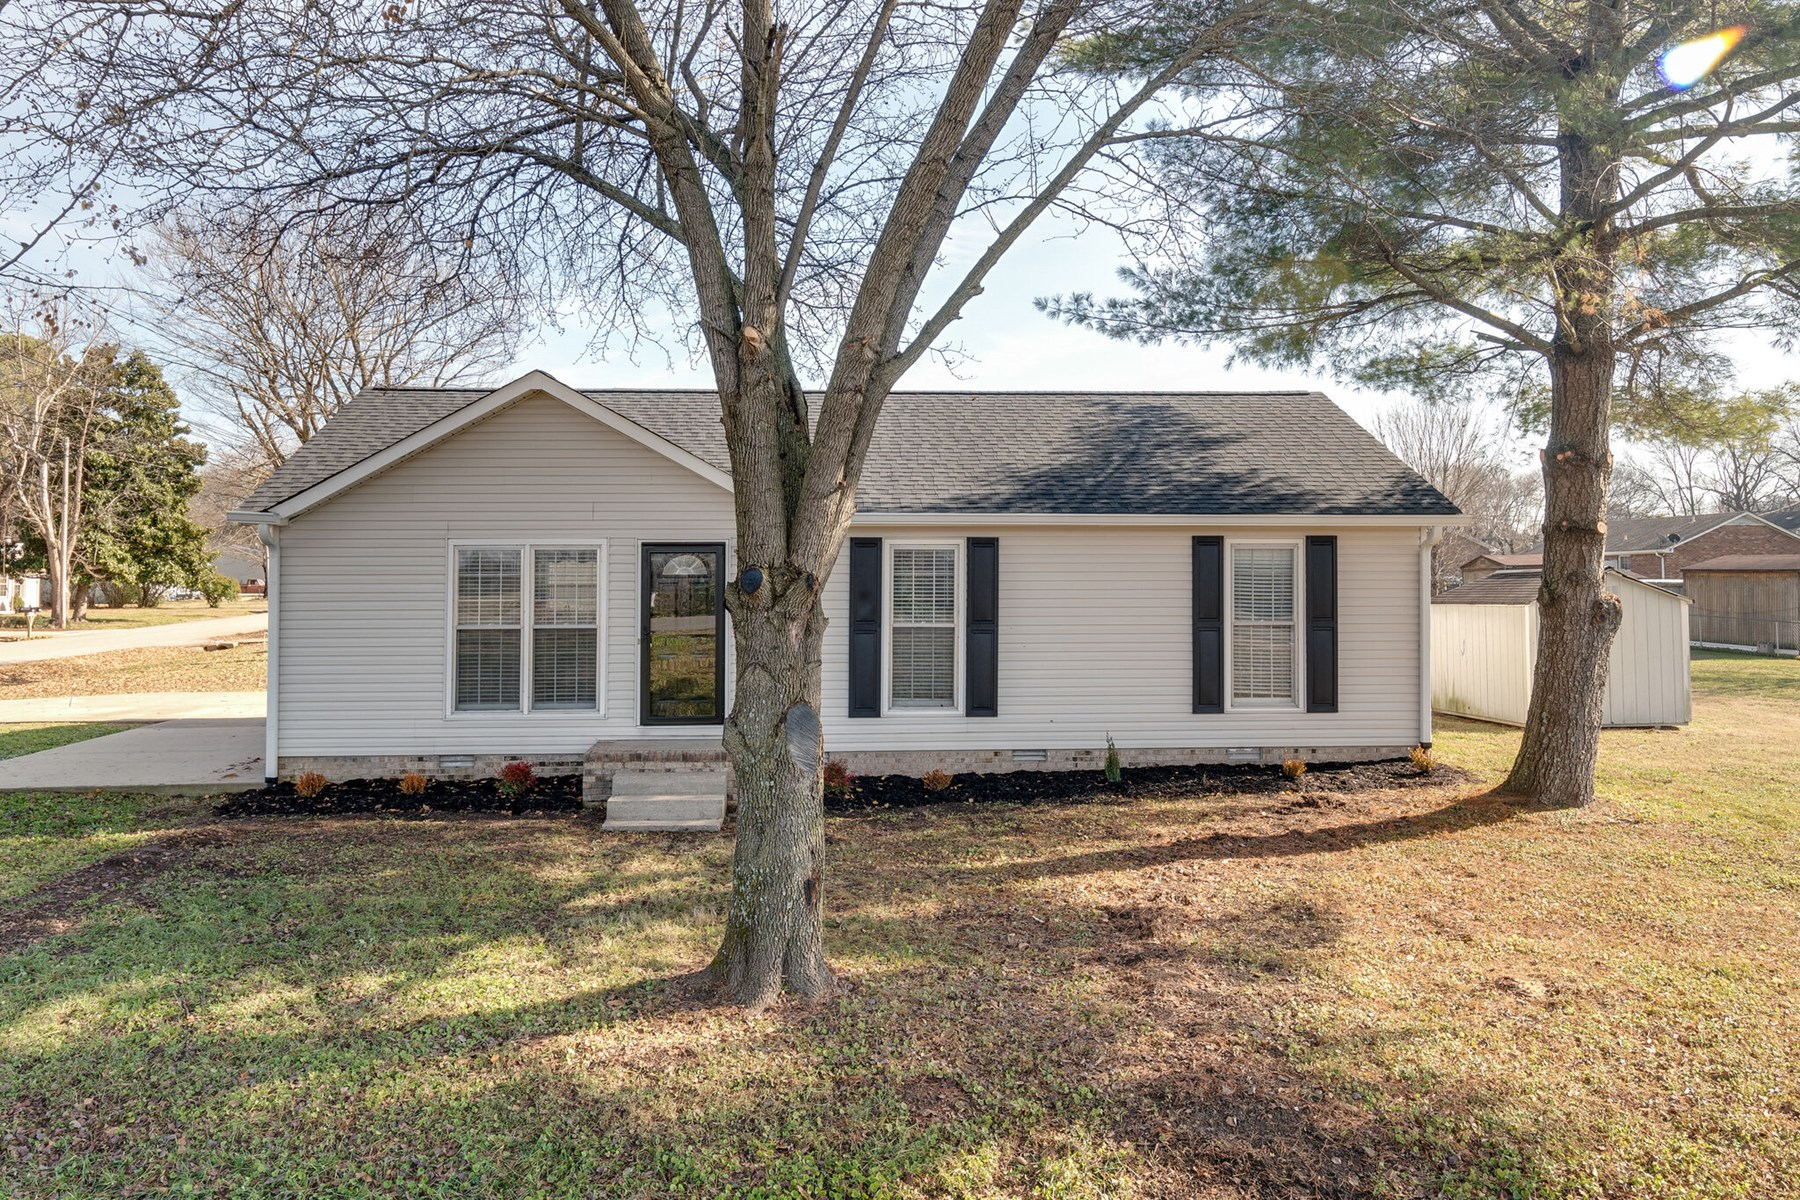 Home for Sale in Hickory Hollow Subdivision, in Columbia, TN